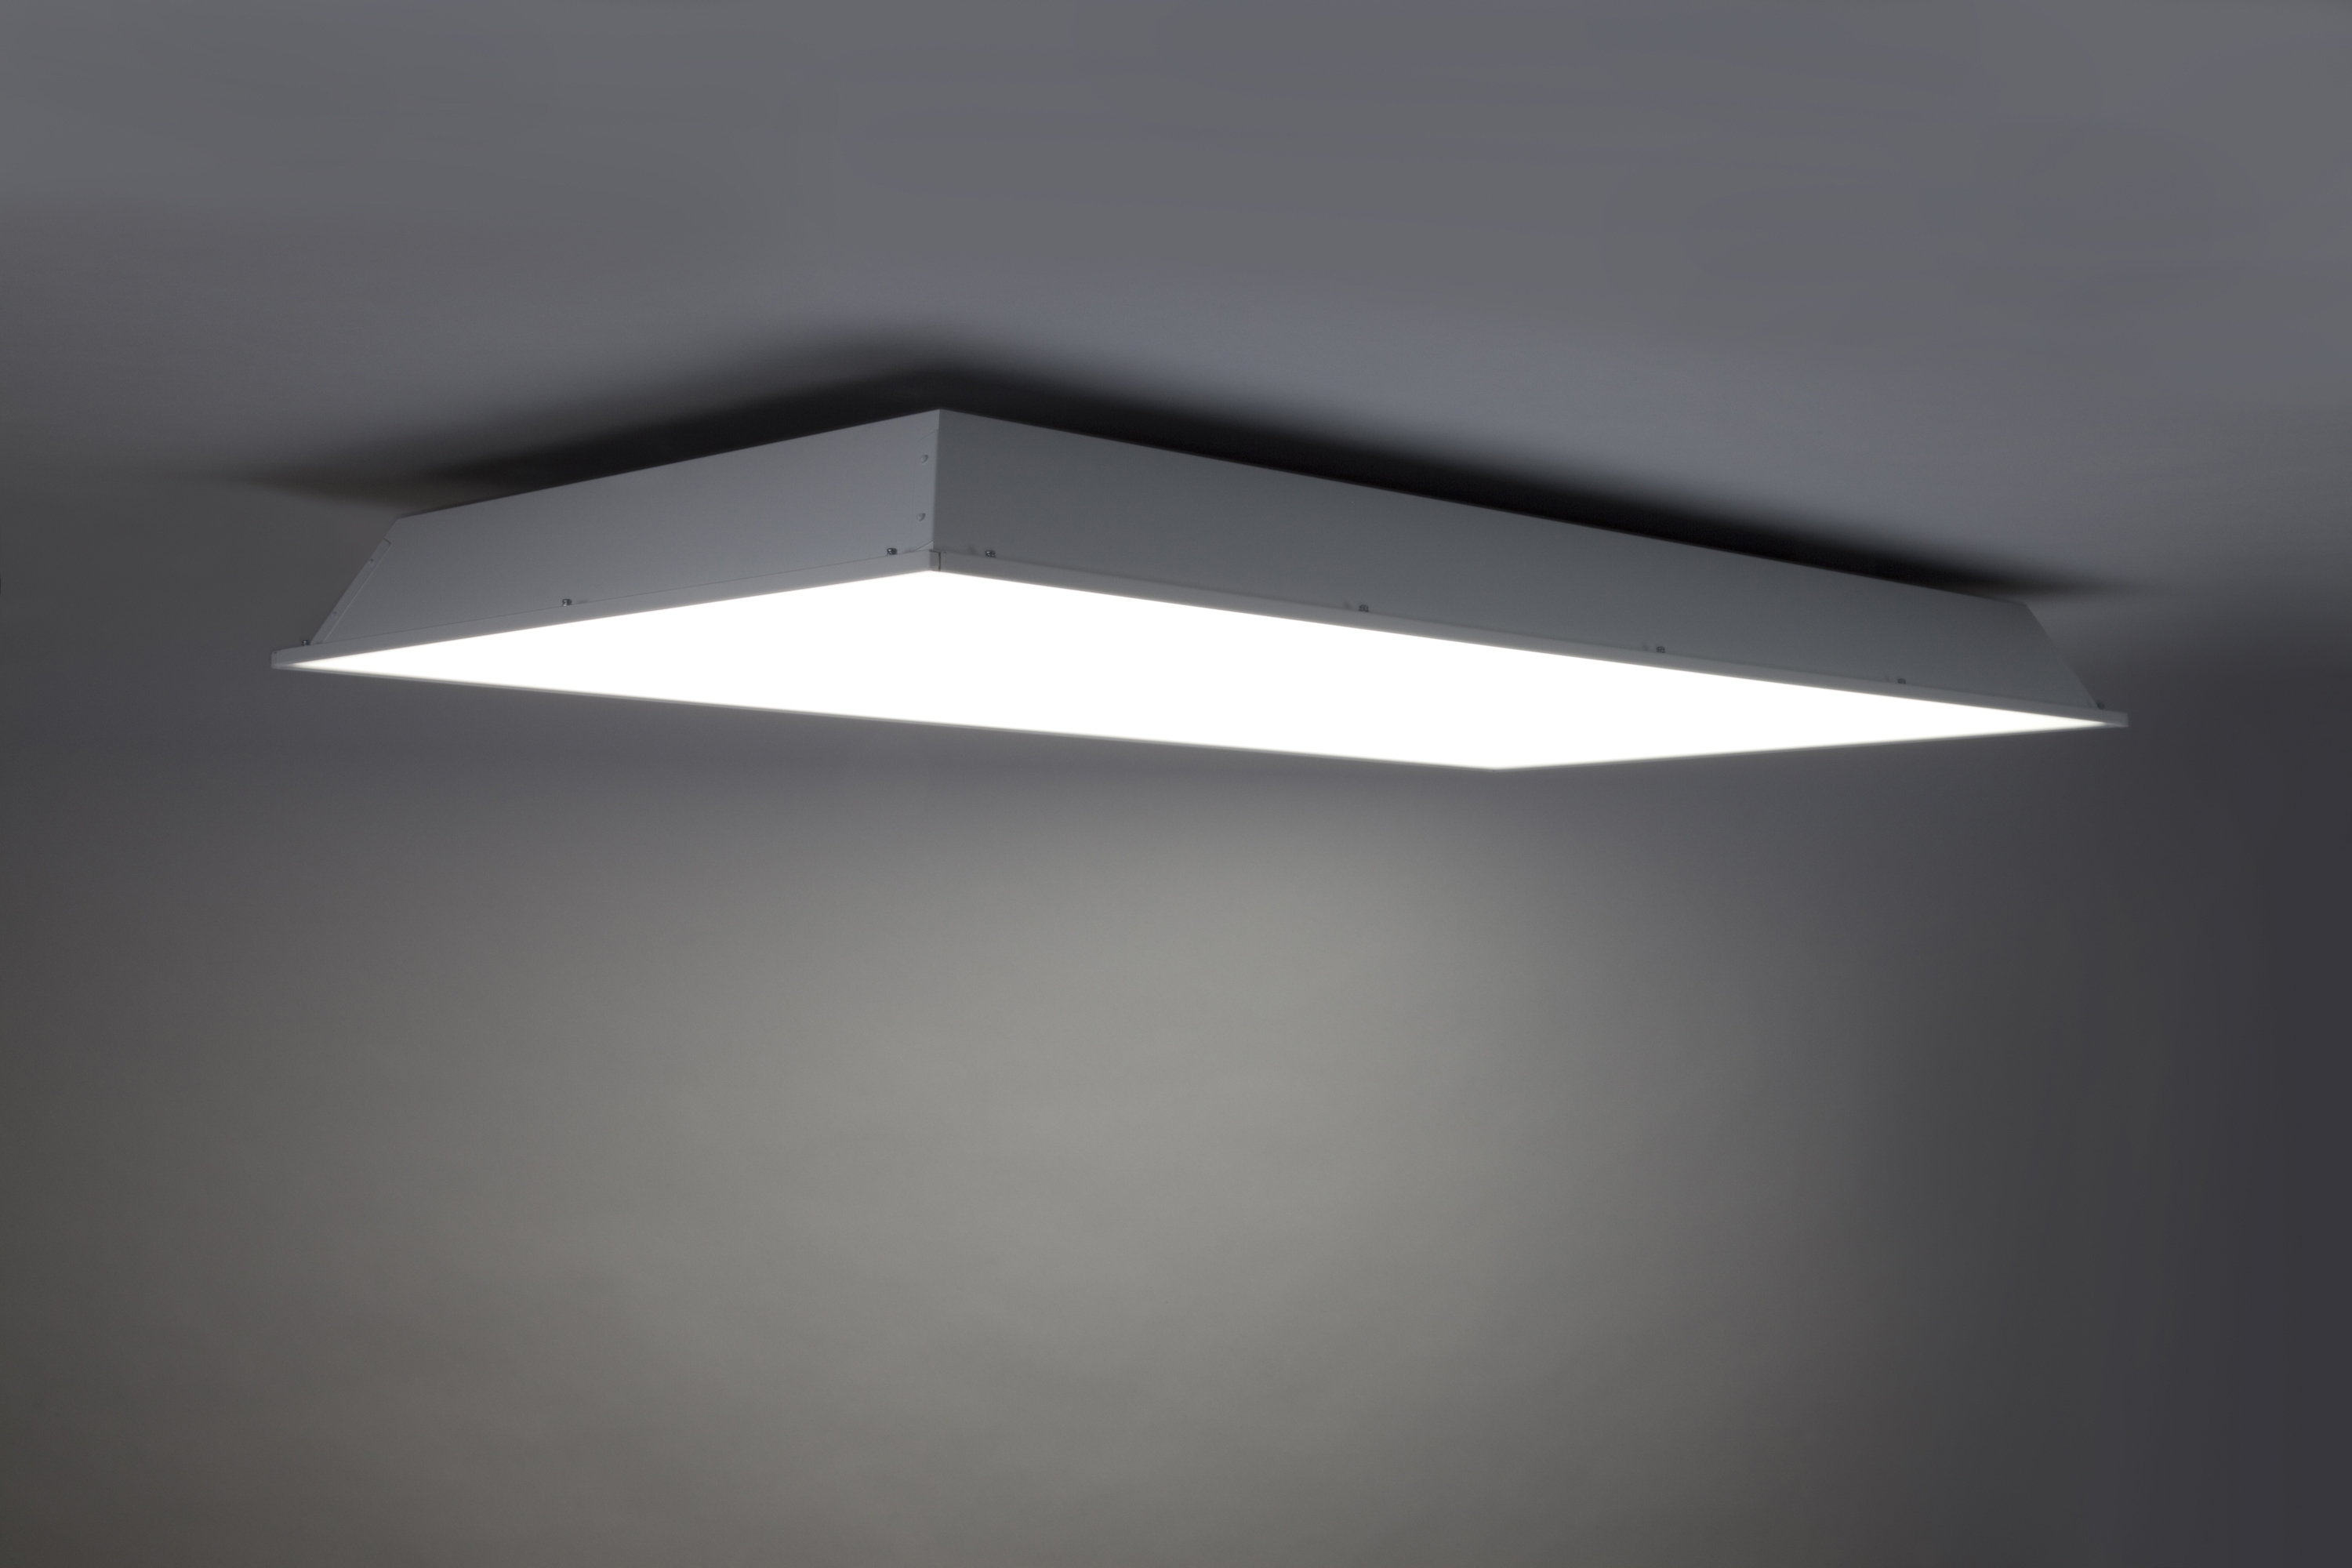 Led Ceiling Lights Stars – Led Ceiling Lights Advantages And Where With Outdoor Ceiling Led Lights (#5 of 15)